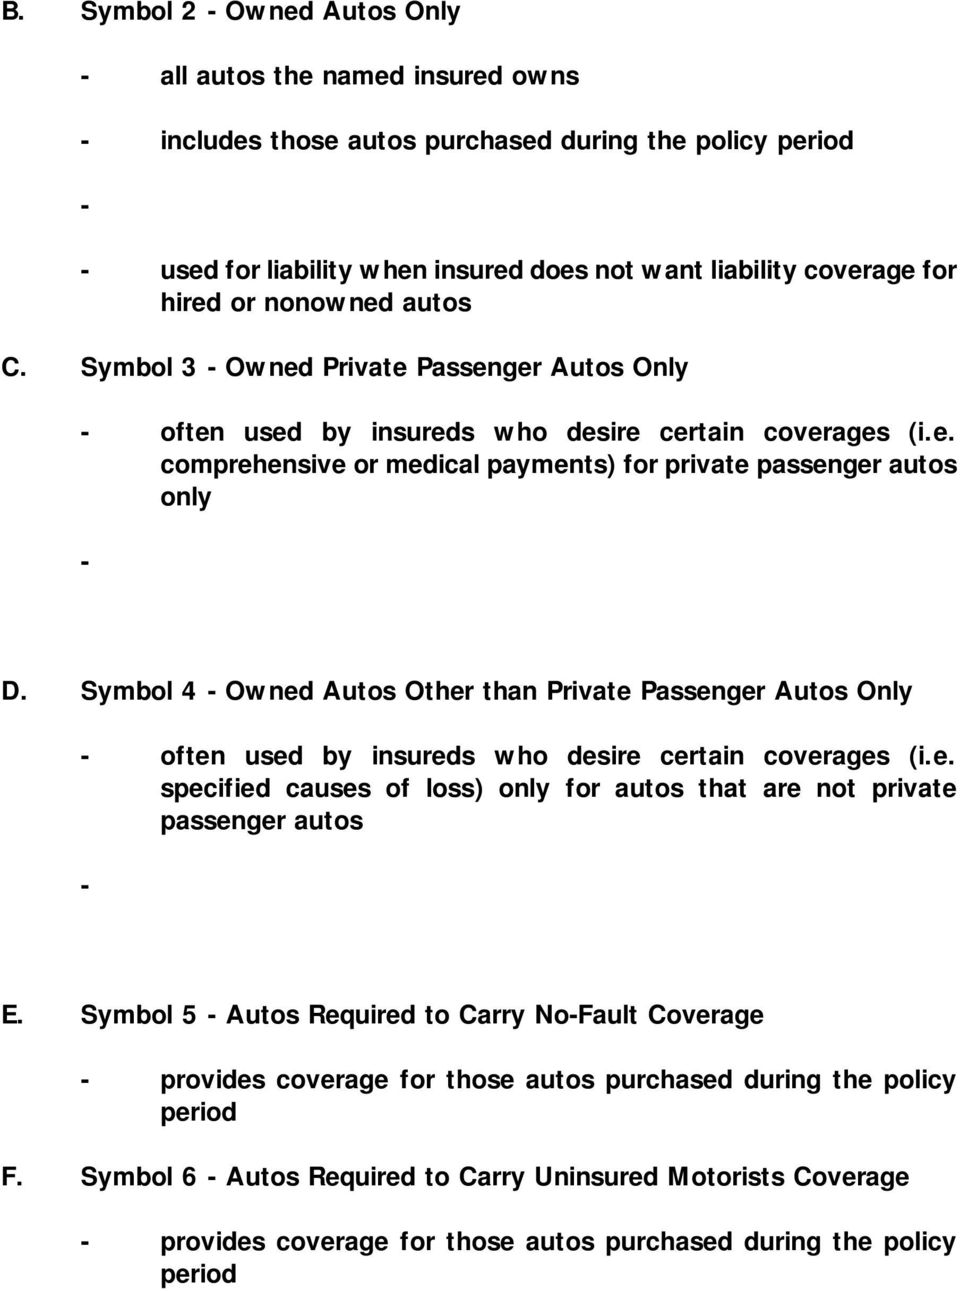 Symbol 4 Owned Autos Other than Private Passenger Autos Only often used by insureds who desire certain coverages (i.e. specified causes of loss) only for autos that are not private passenger autos E.